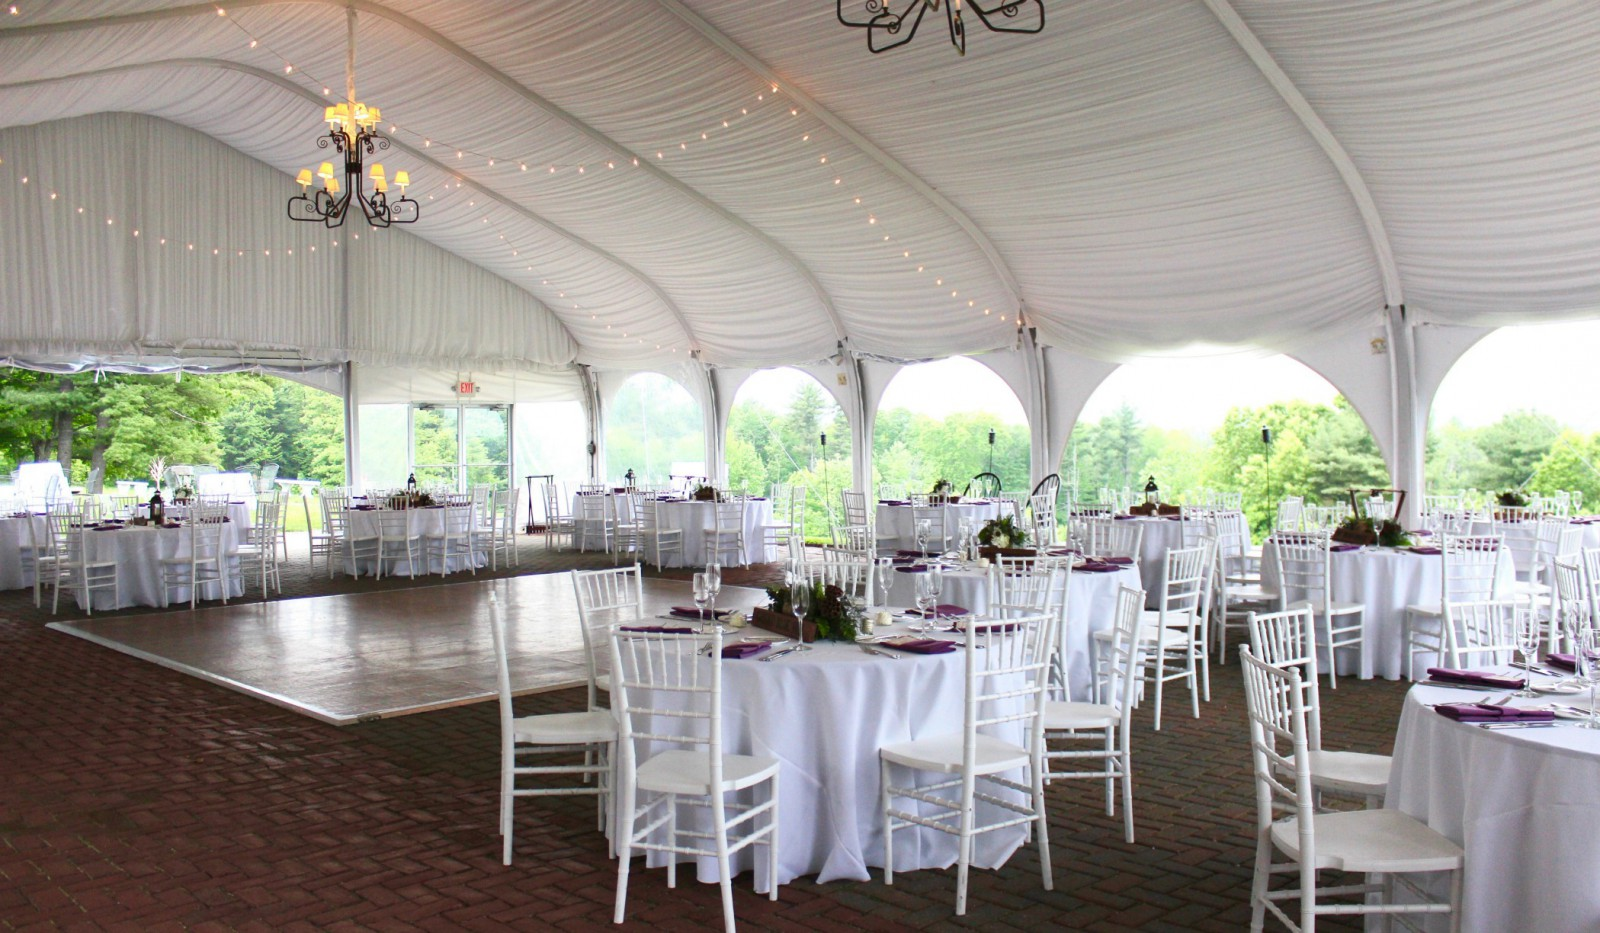 Dining room under tent with dance floor set for large event.